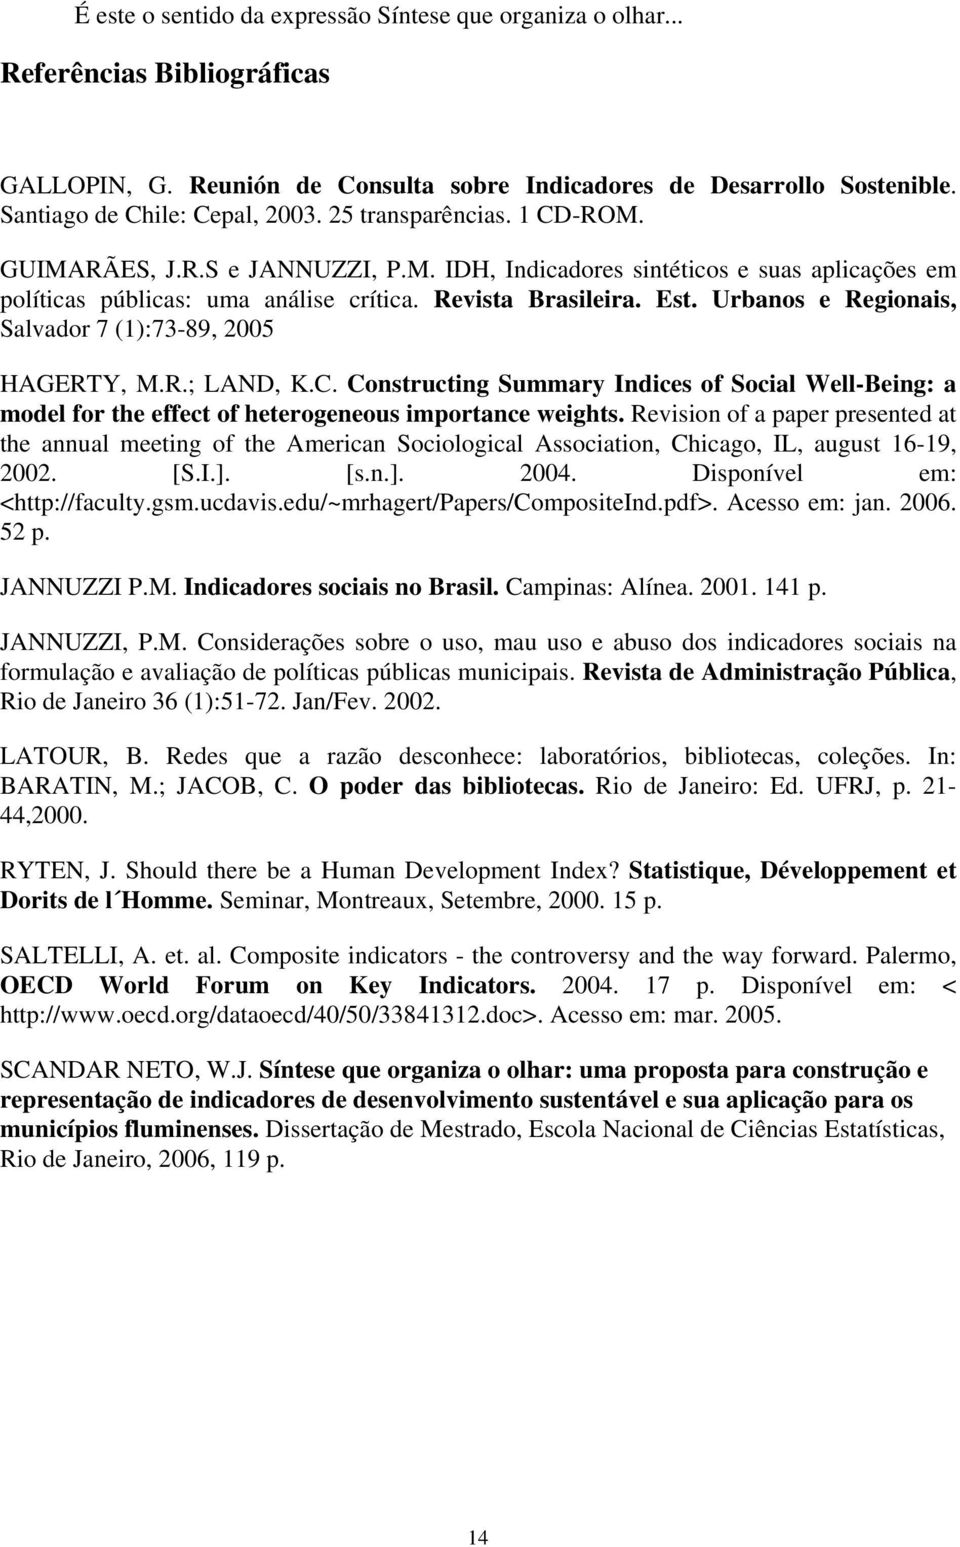 Urbanos e Regionais, Salvador 7 (1):73-89, 2005 HAGERTY, M.R.; LAND, K.C. Constructing Summary Indices of Social Well-Being: a model for the effect of heterogeneous importance weights.